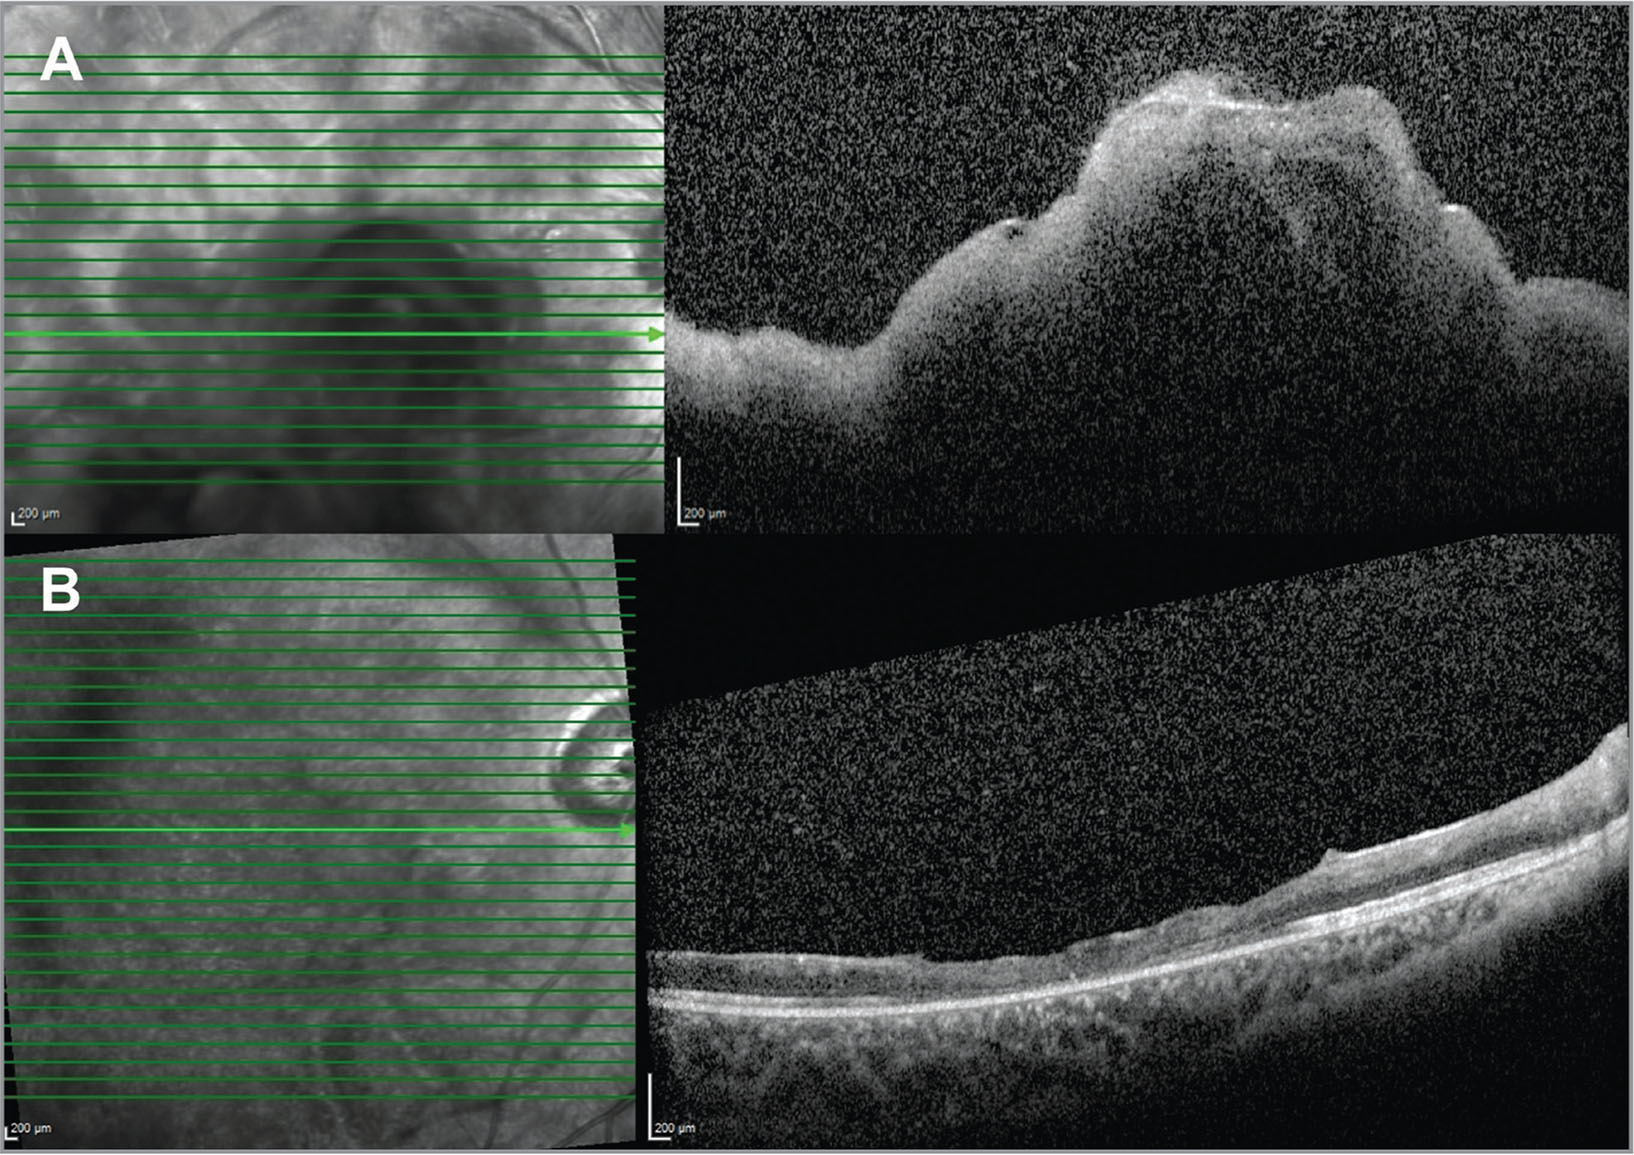 (A) Right eye optical coherence tomography (OCT) on presentation, showing nerve fiber layer edema and the presence of subretinal fluid. (B) Right eye OCT after 4 months.